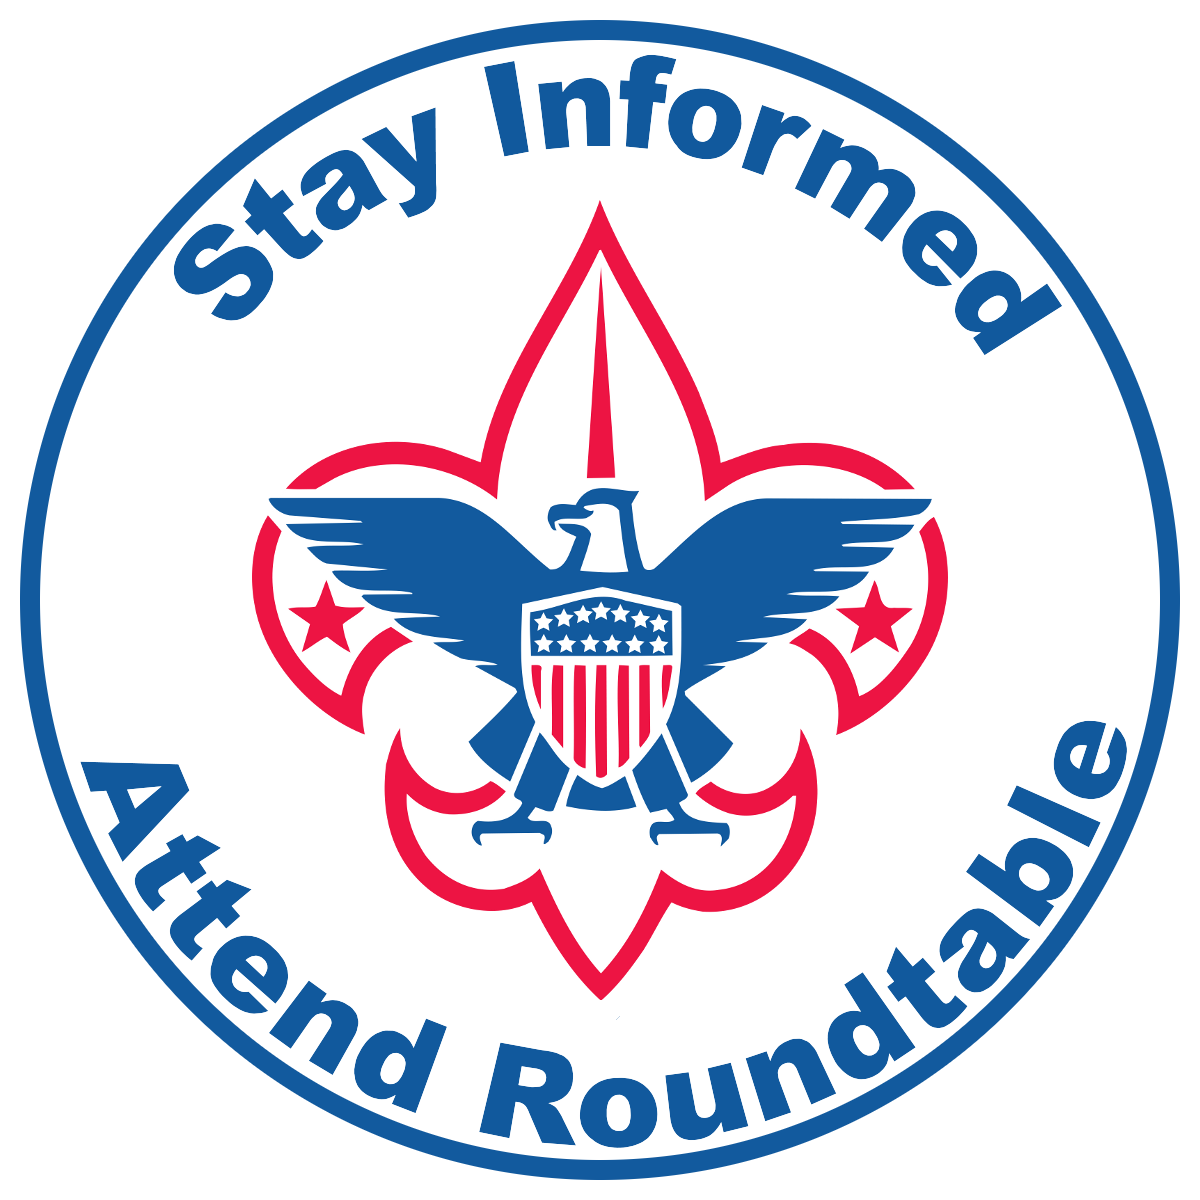 Stay Informed - Attend Roundtable